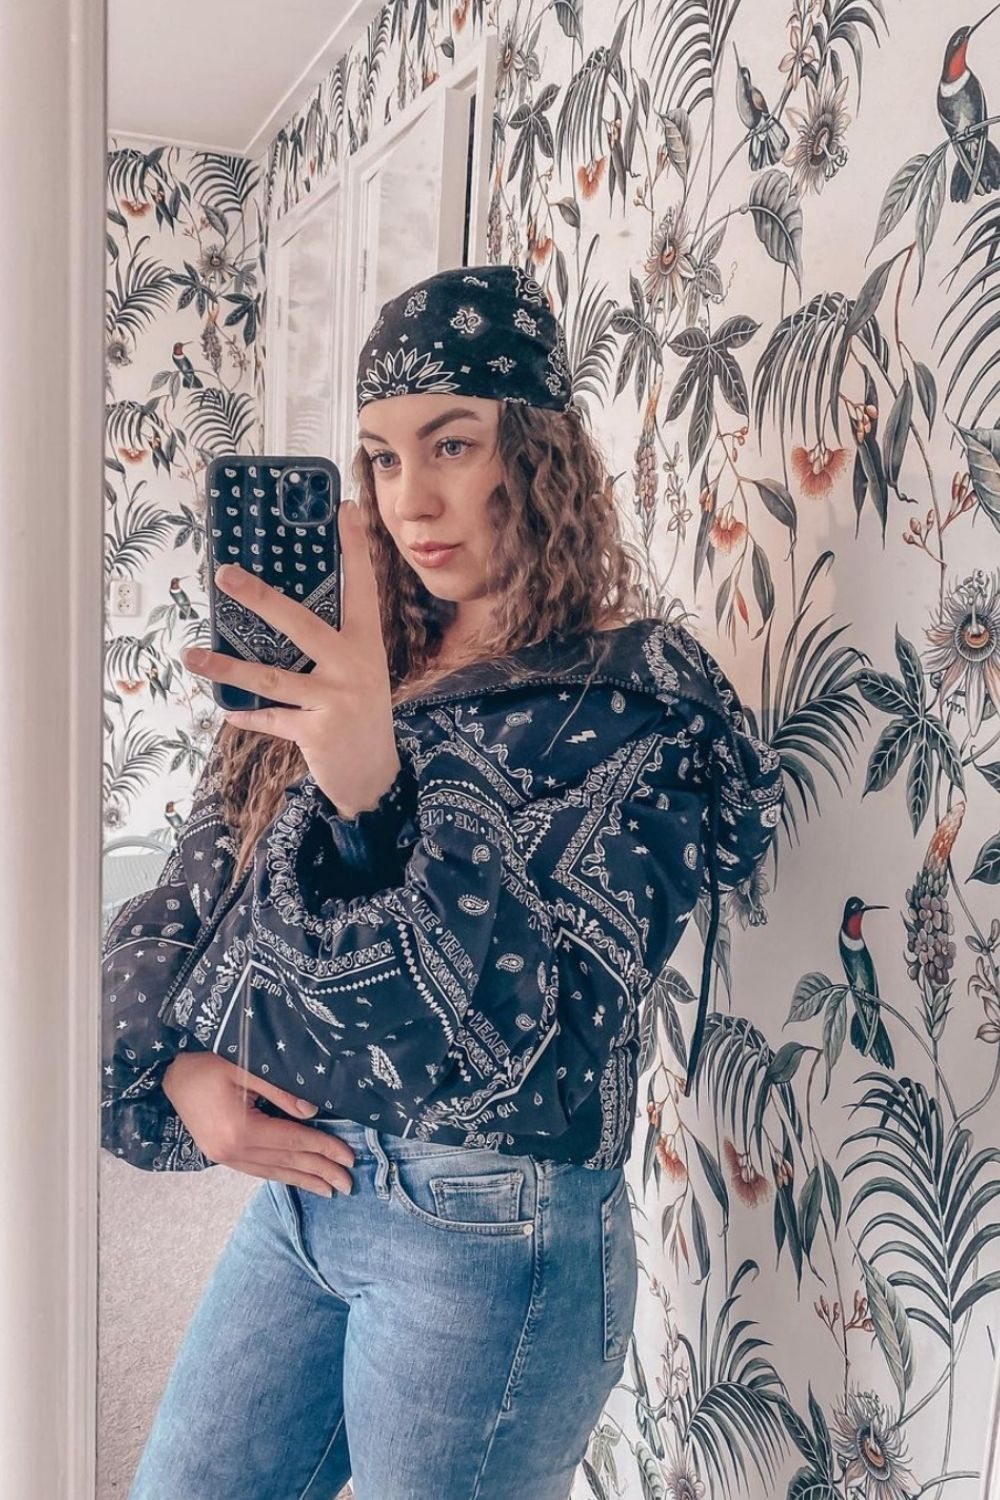 How to style head scarf bandana for women 2021?